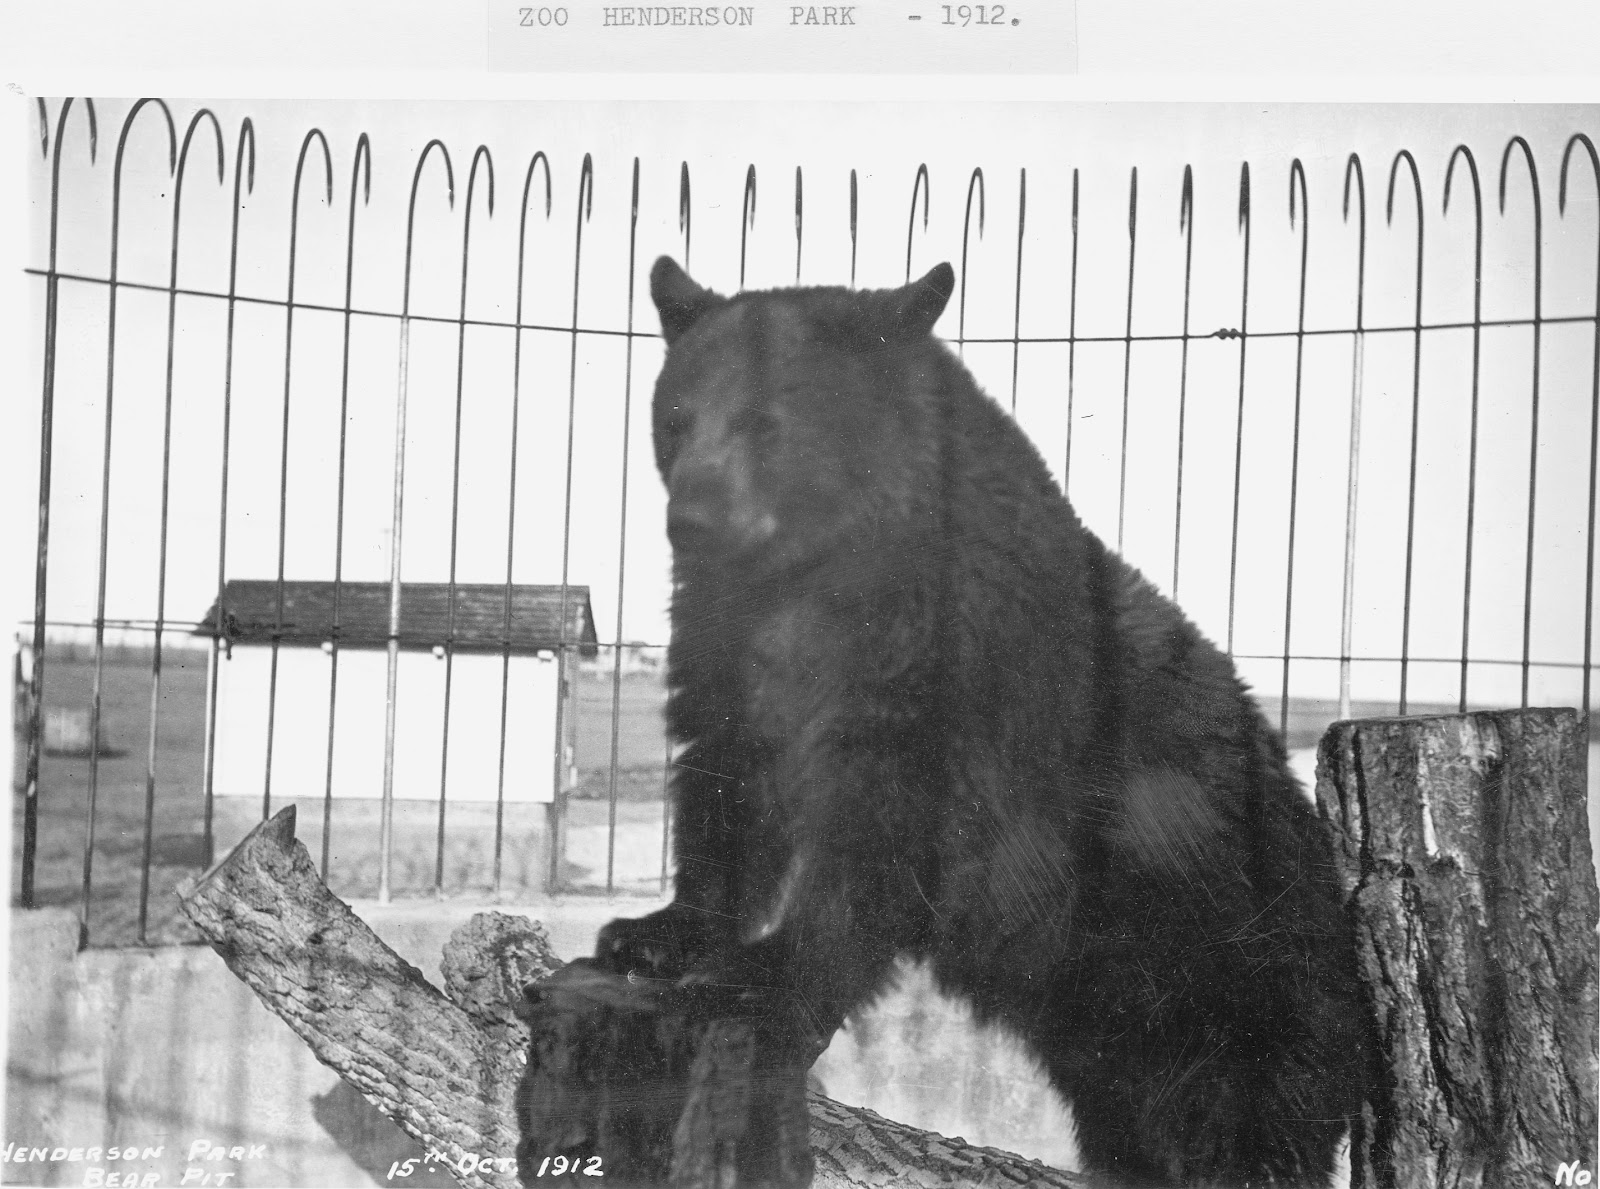 Henderson Lake 1912 bear in the Henderson Lake zoo 19760219024 p 74.jpg